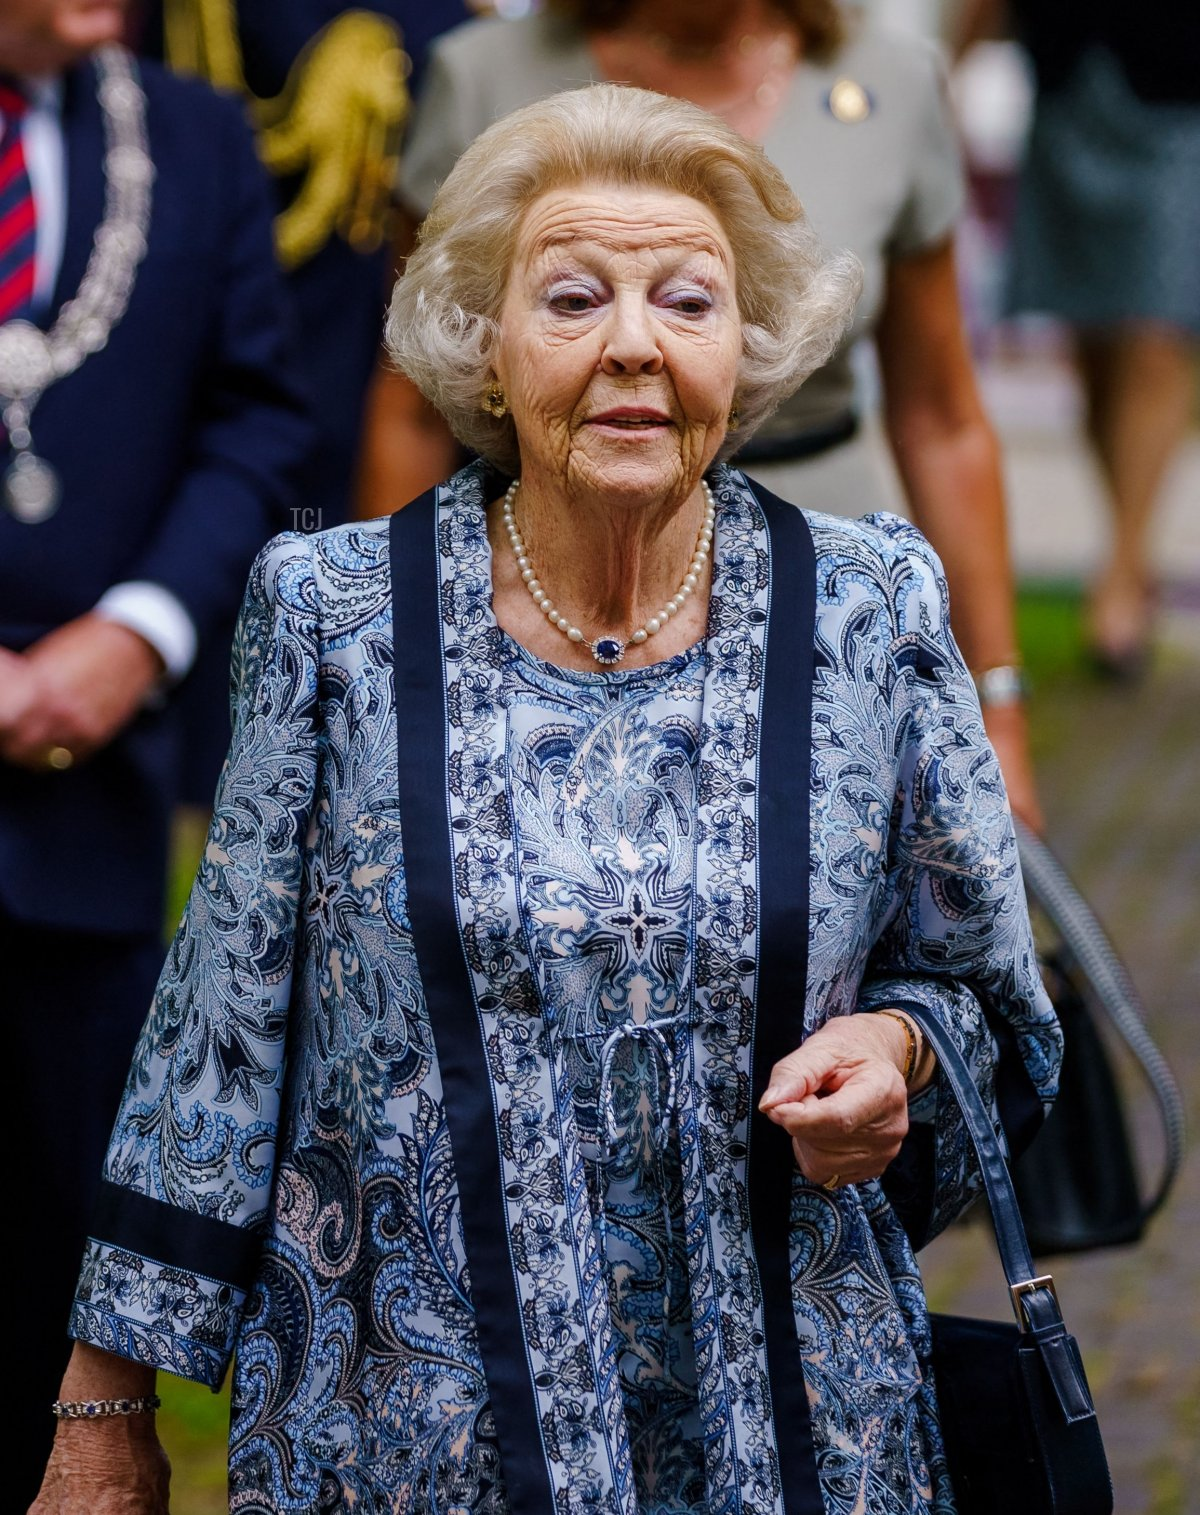 Dutch Princess Beatrix visits the sculpture exhibition 'Voorhout Monumentaal' at the Pulchri Studio, an artists' association and gallery for contemporary art, in The Hague on July 12 2021